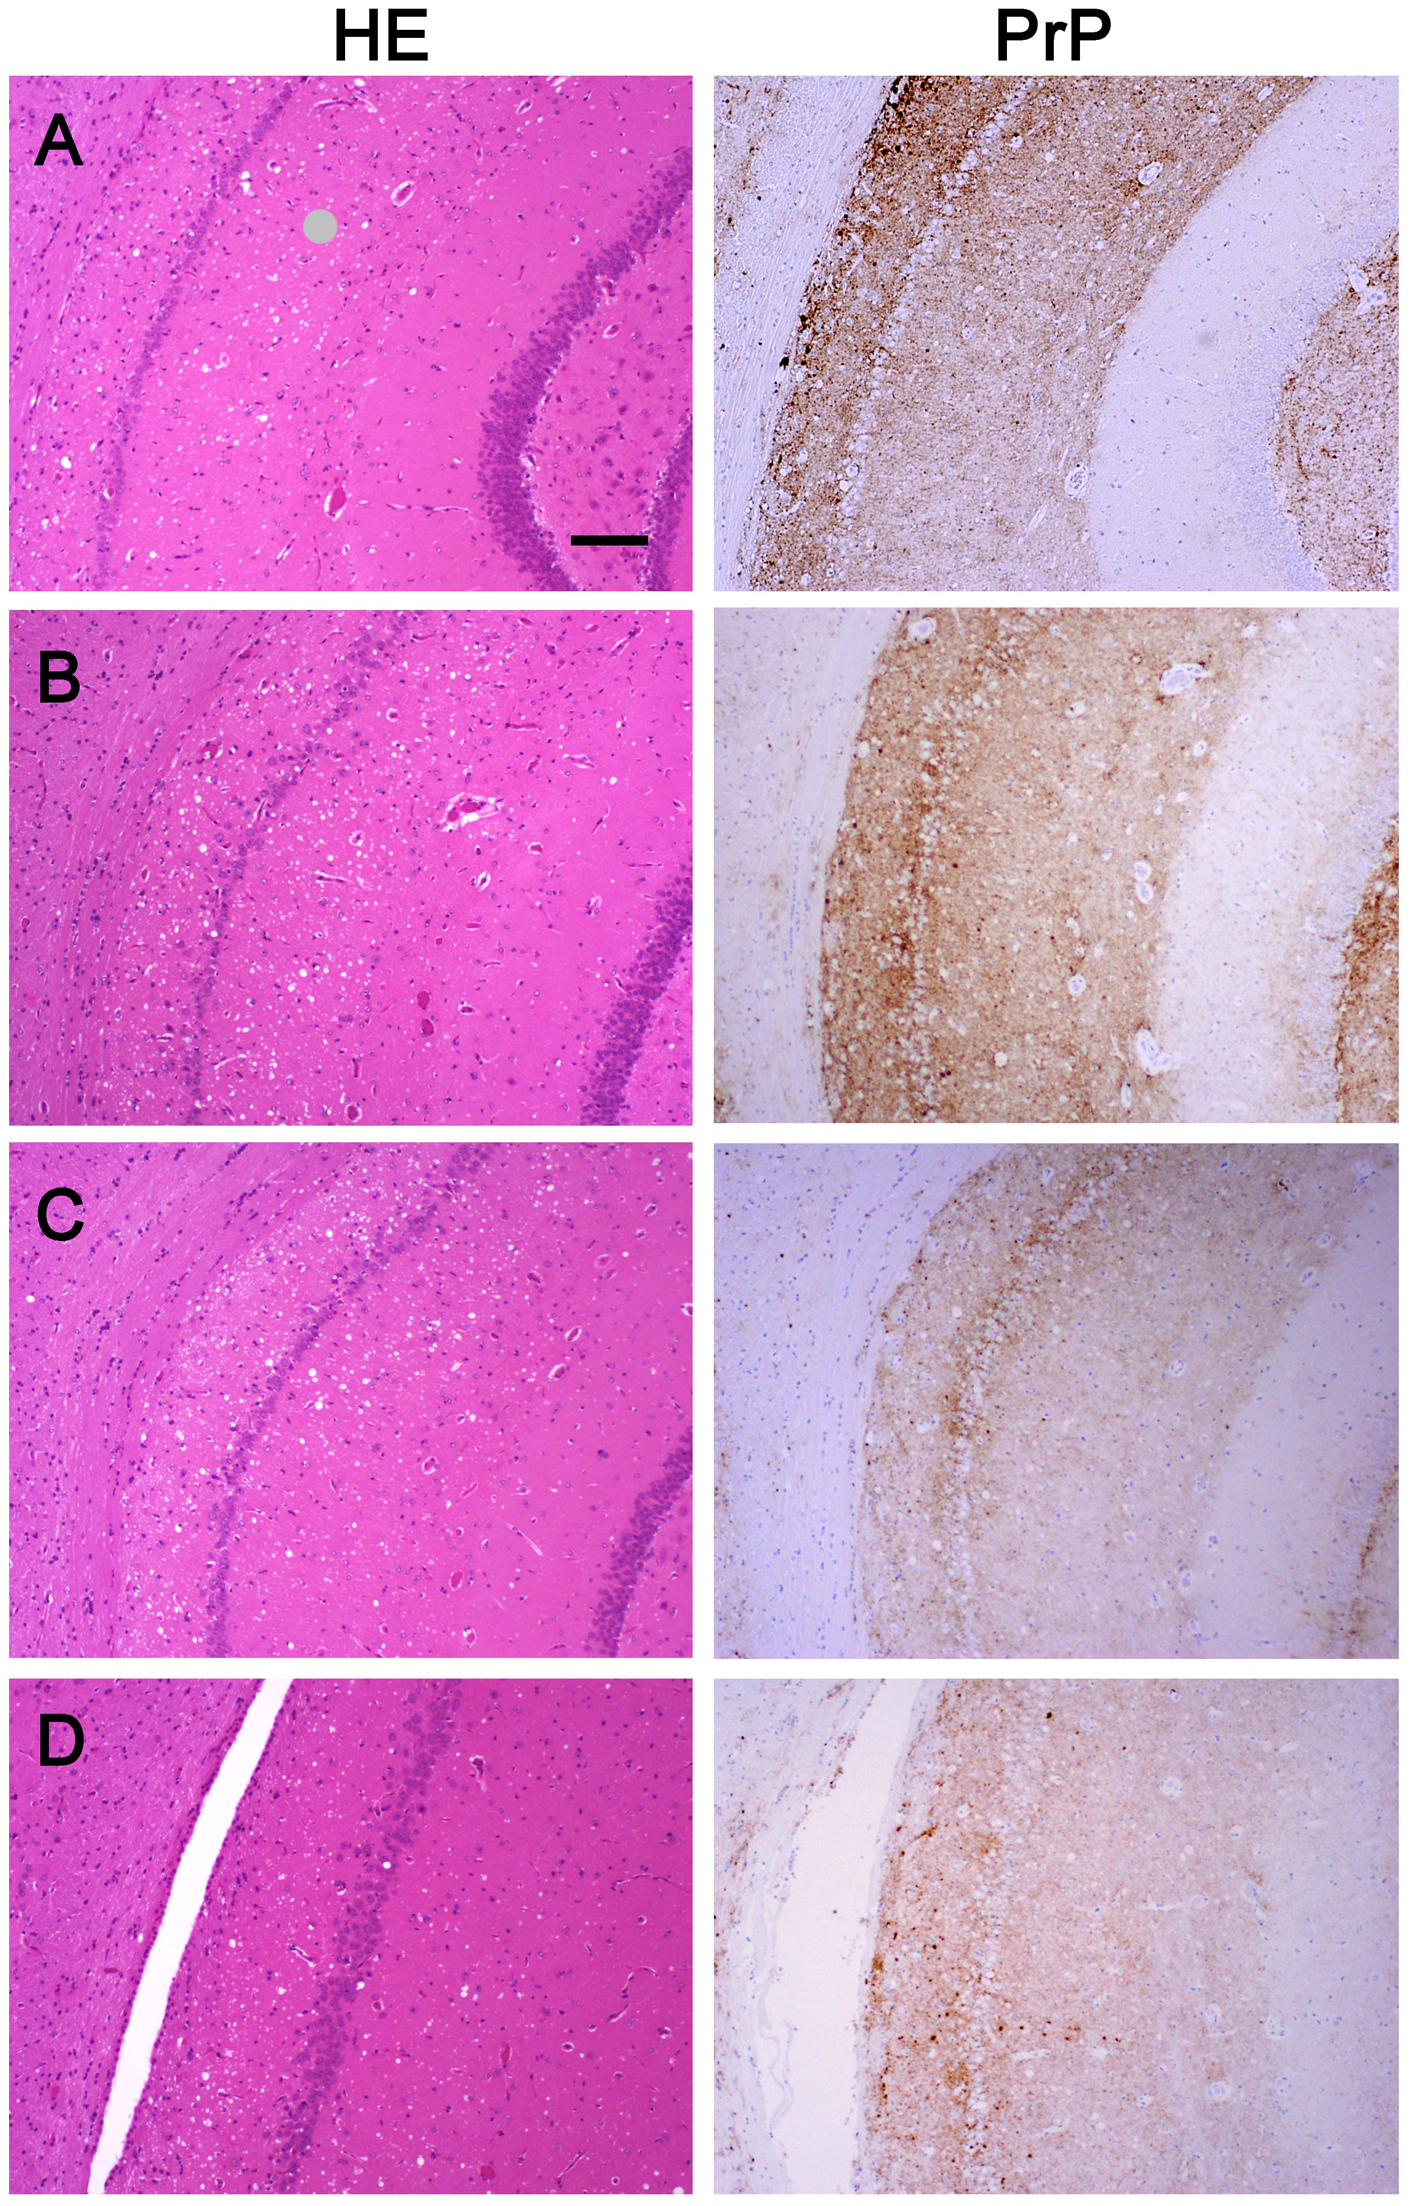 Histopathological and immunohistochemical analyses.